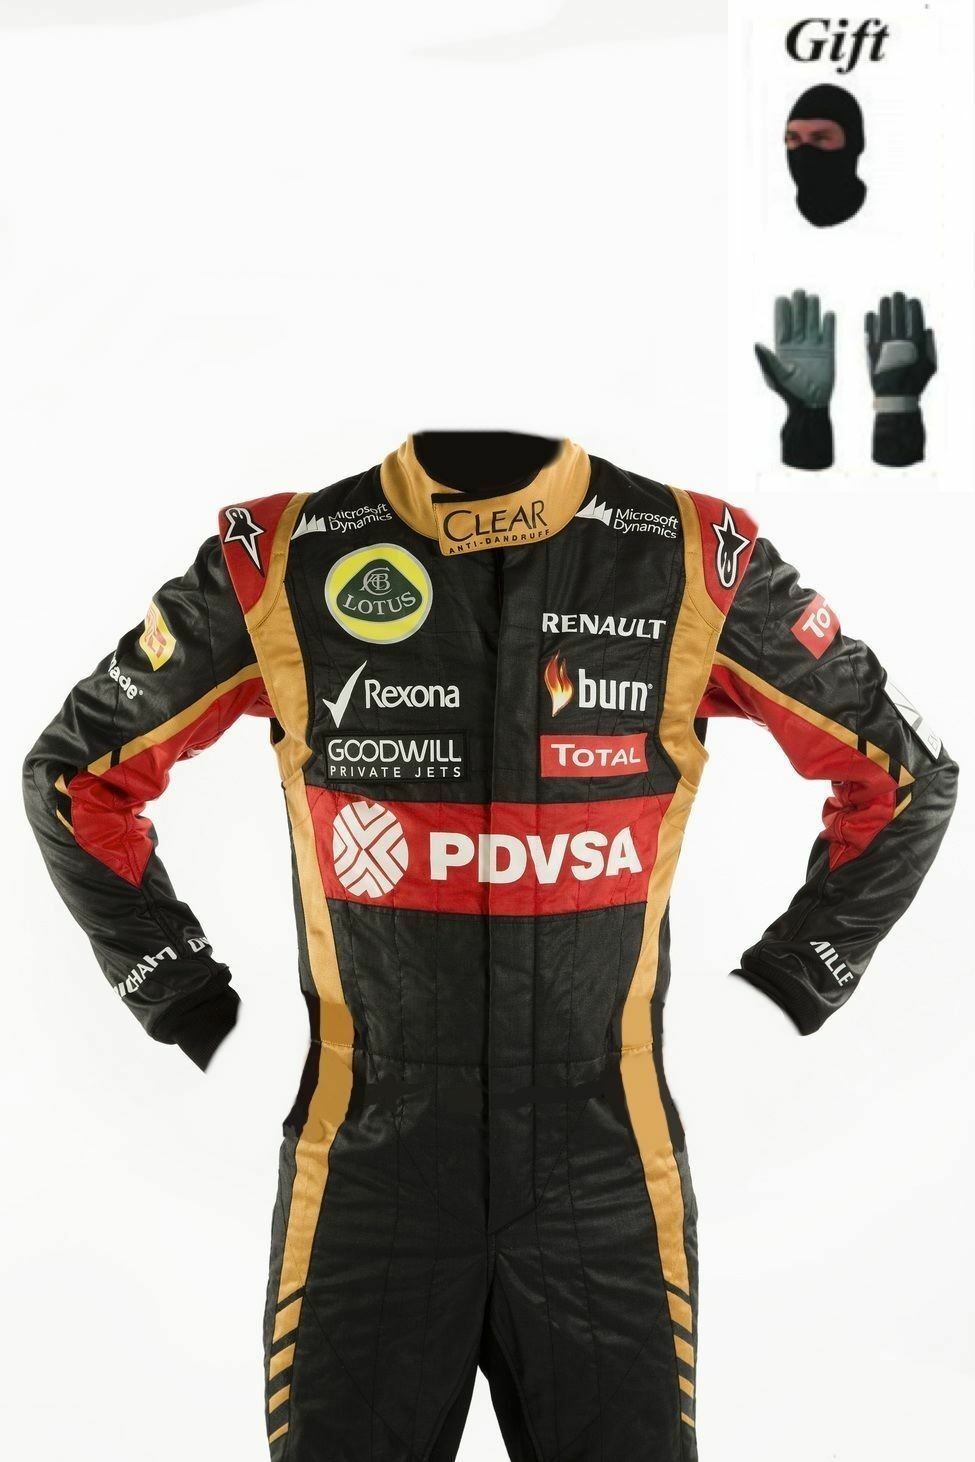 Lotus 2014 Kart race suit CIK FIA Level 2 (Free  gifts)  100% authentic